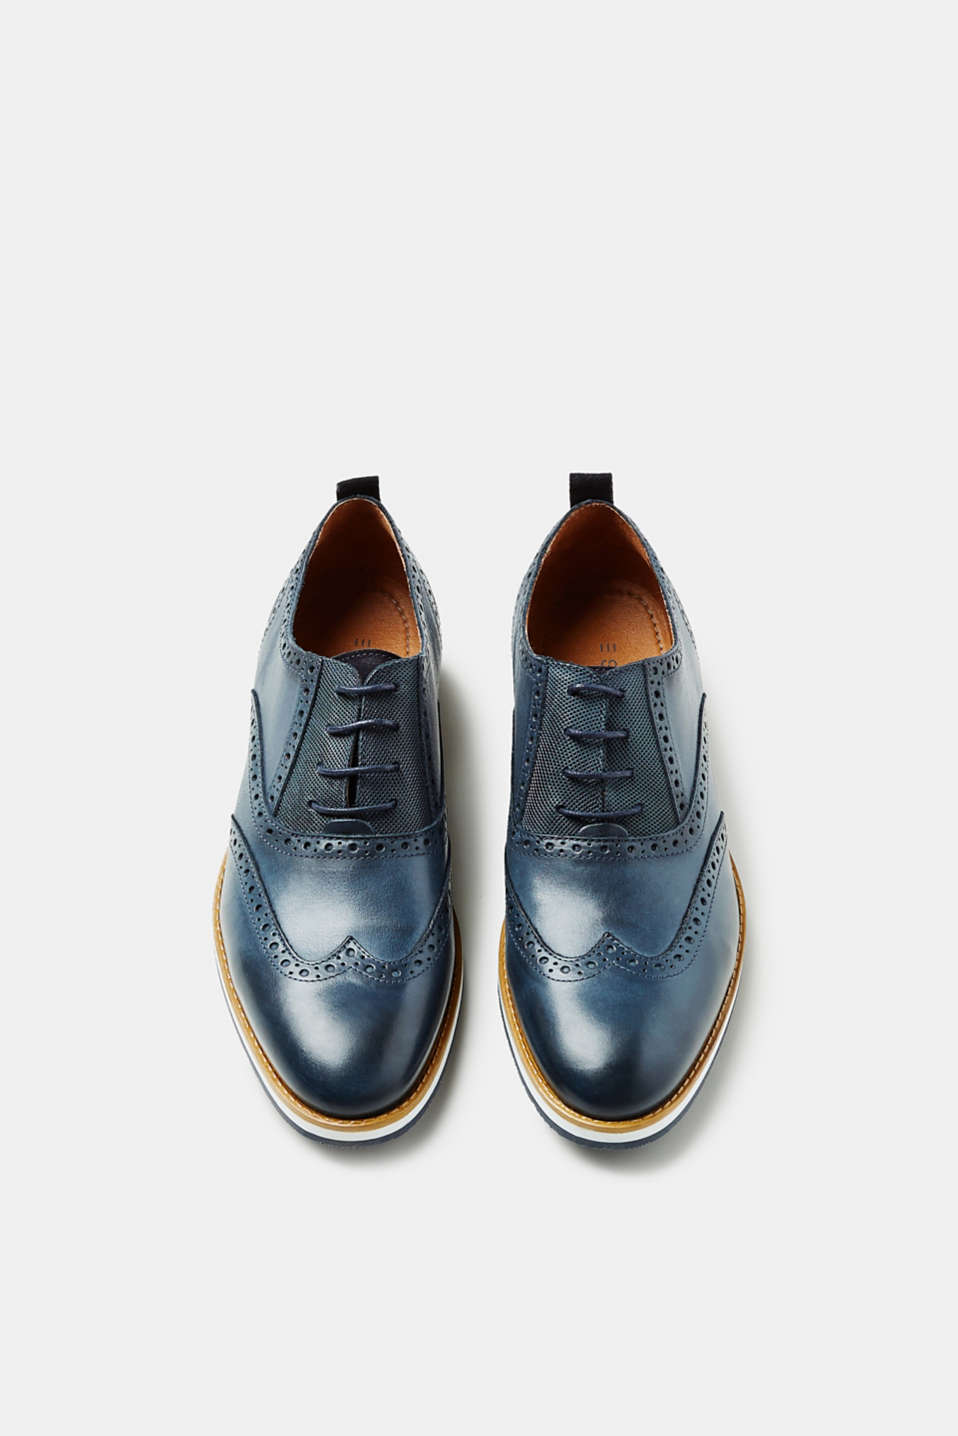 Leather Derby shoes with a brogue pattern